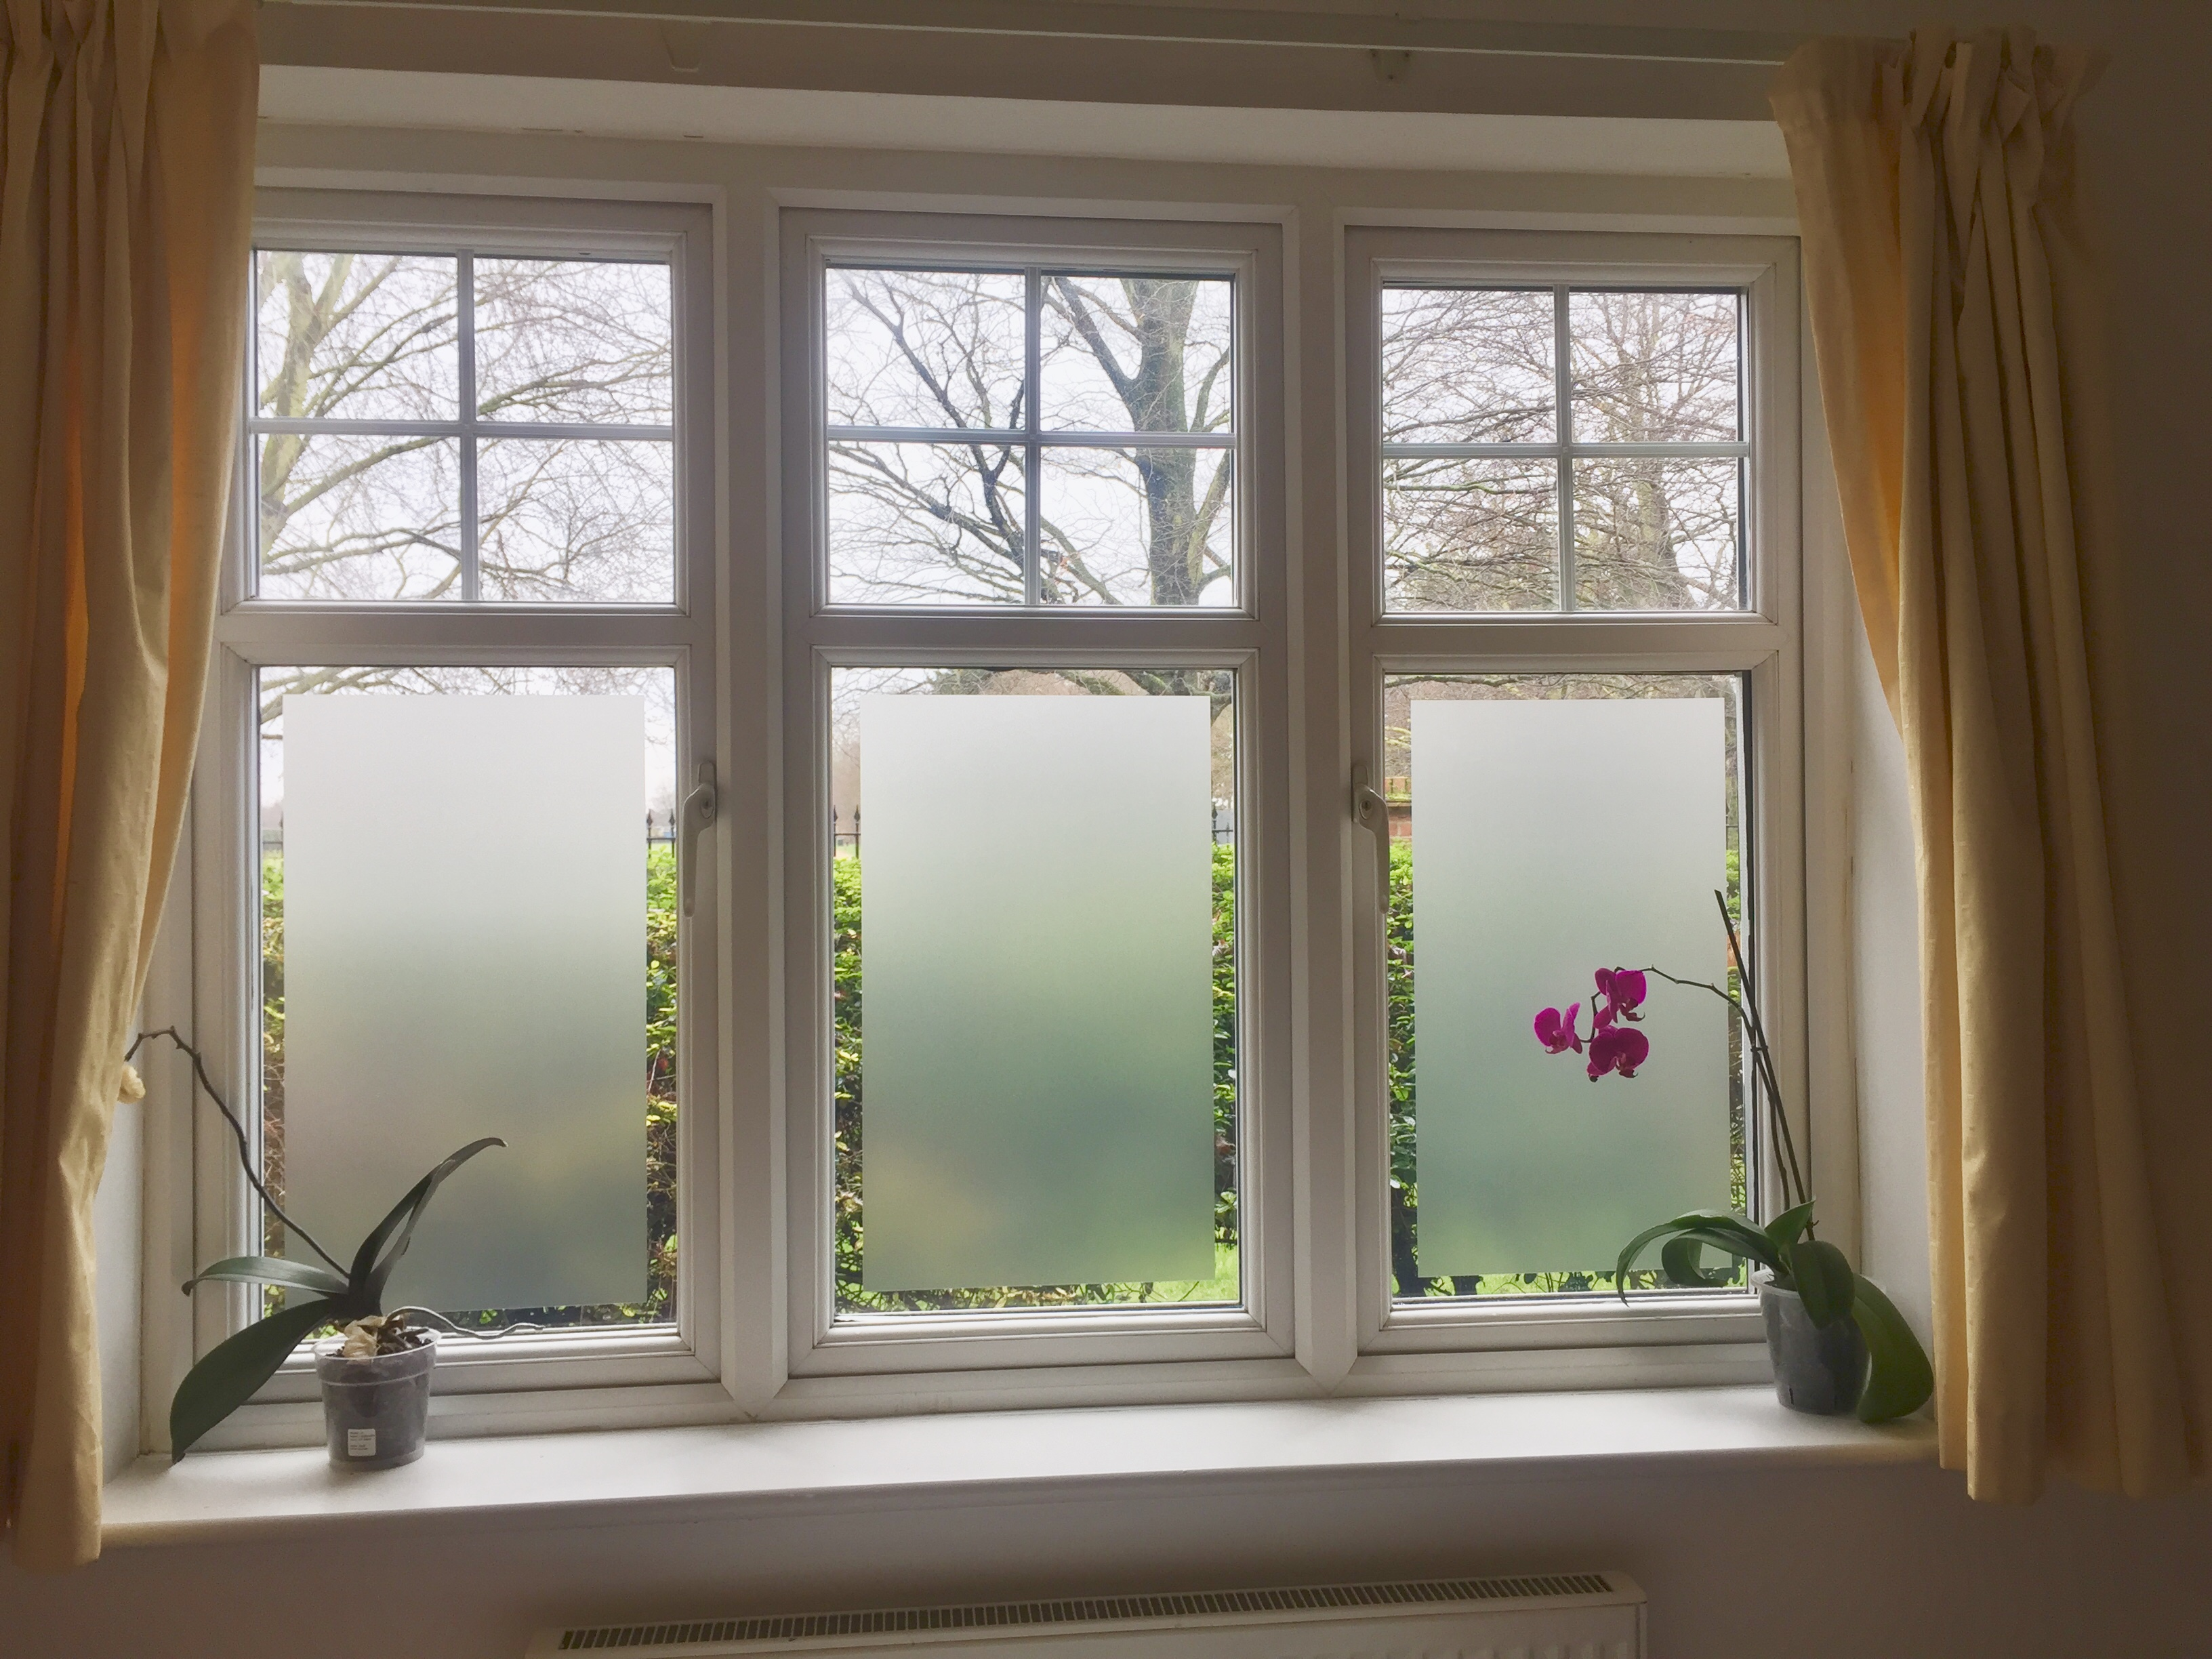 Frosted Glass Man London | Solar reflective film | Privacy